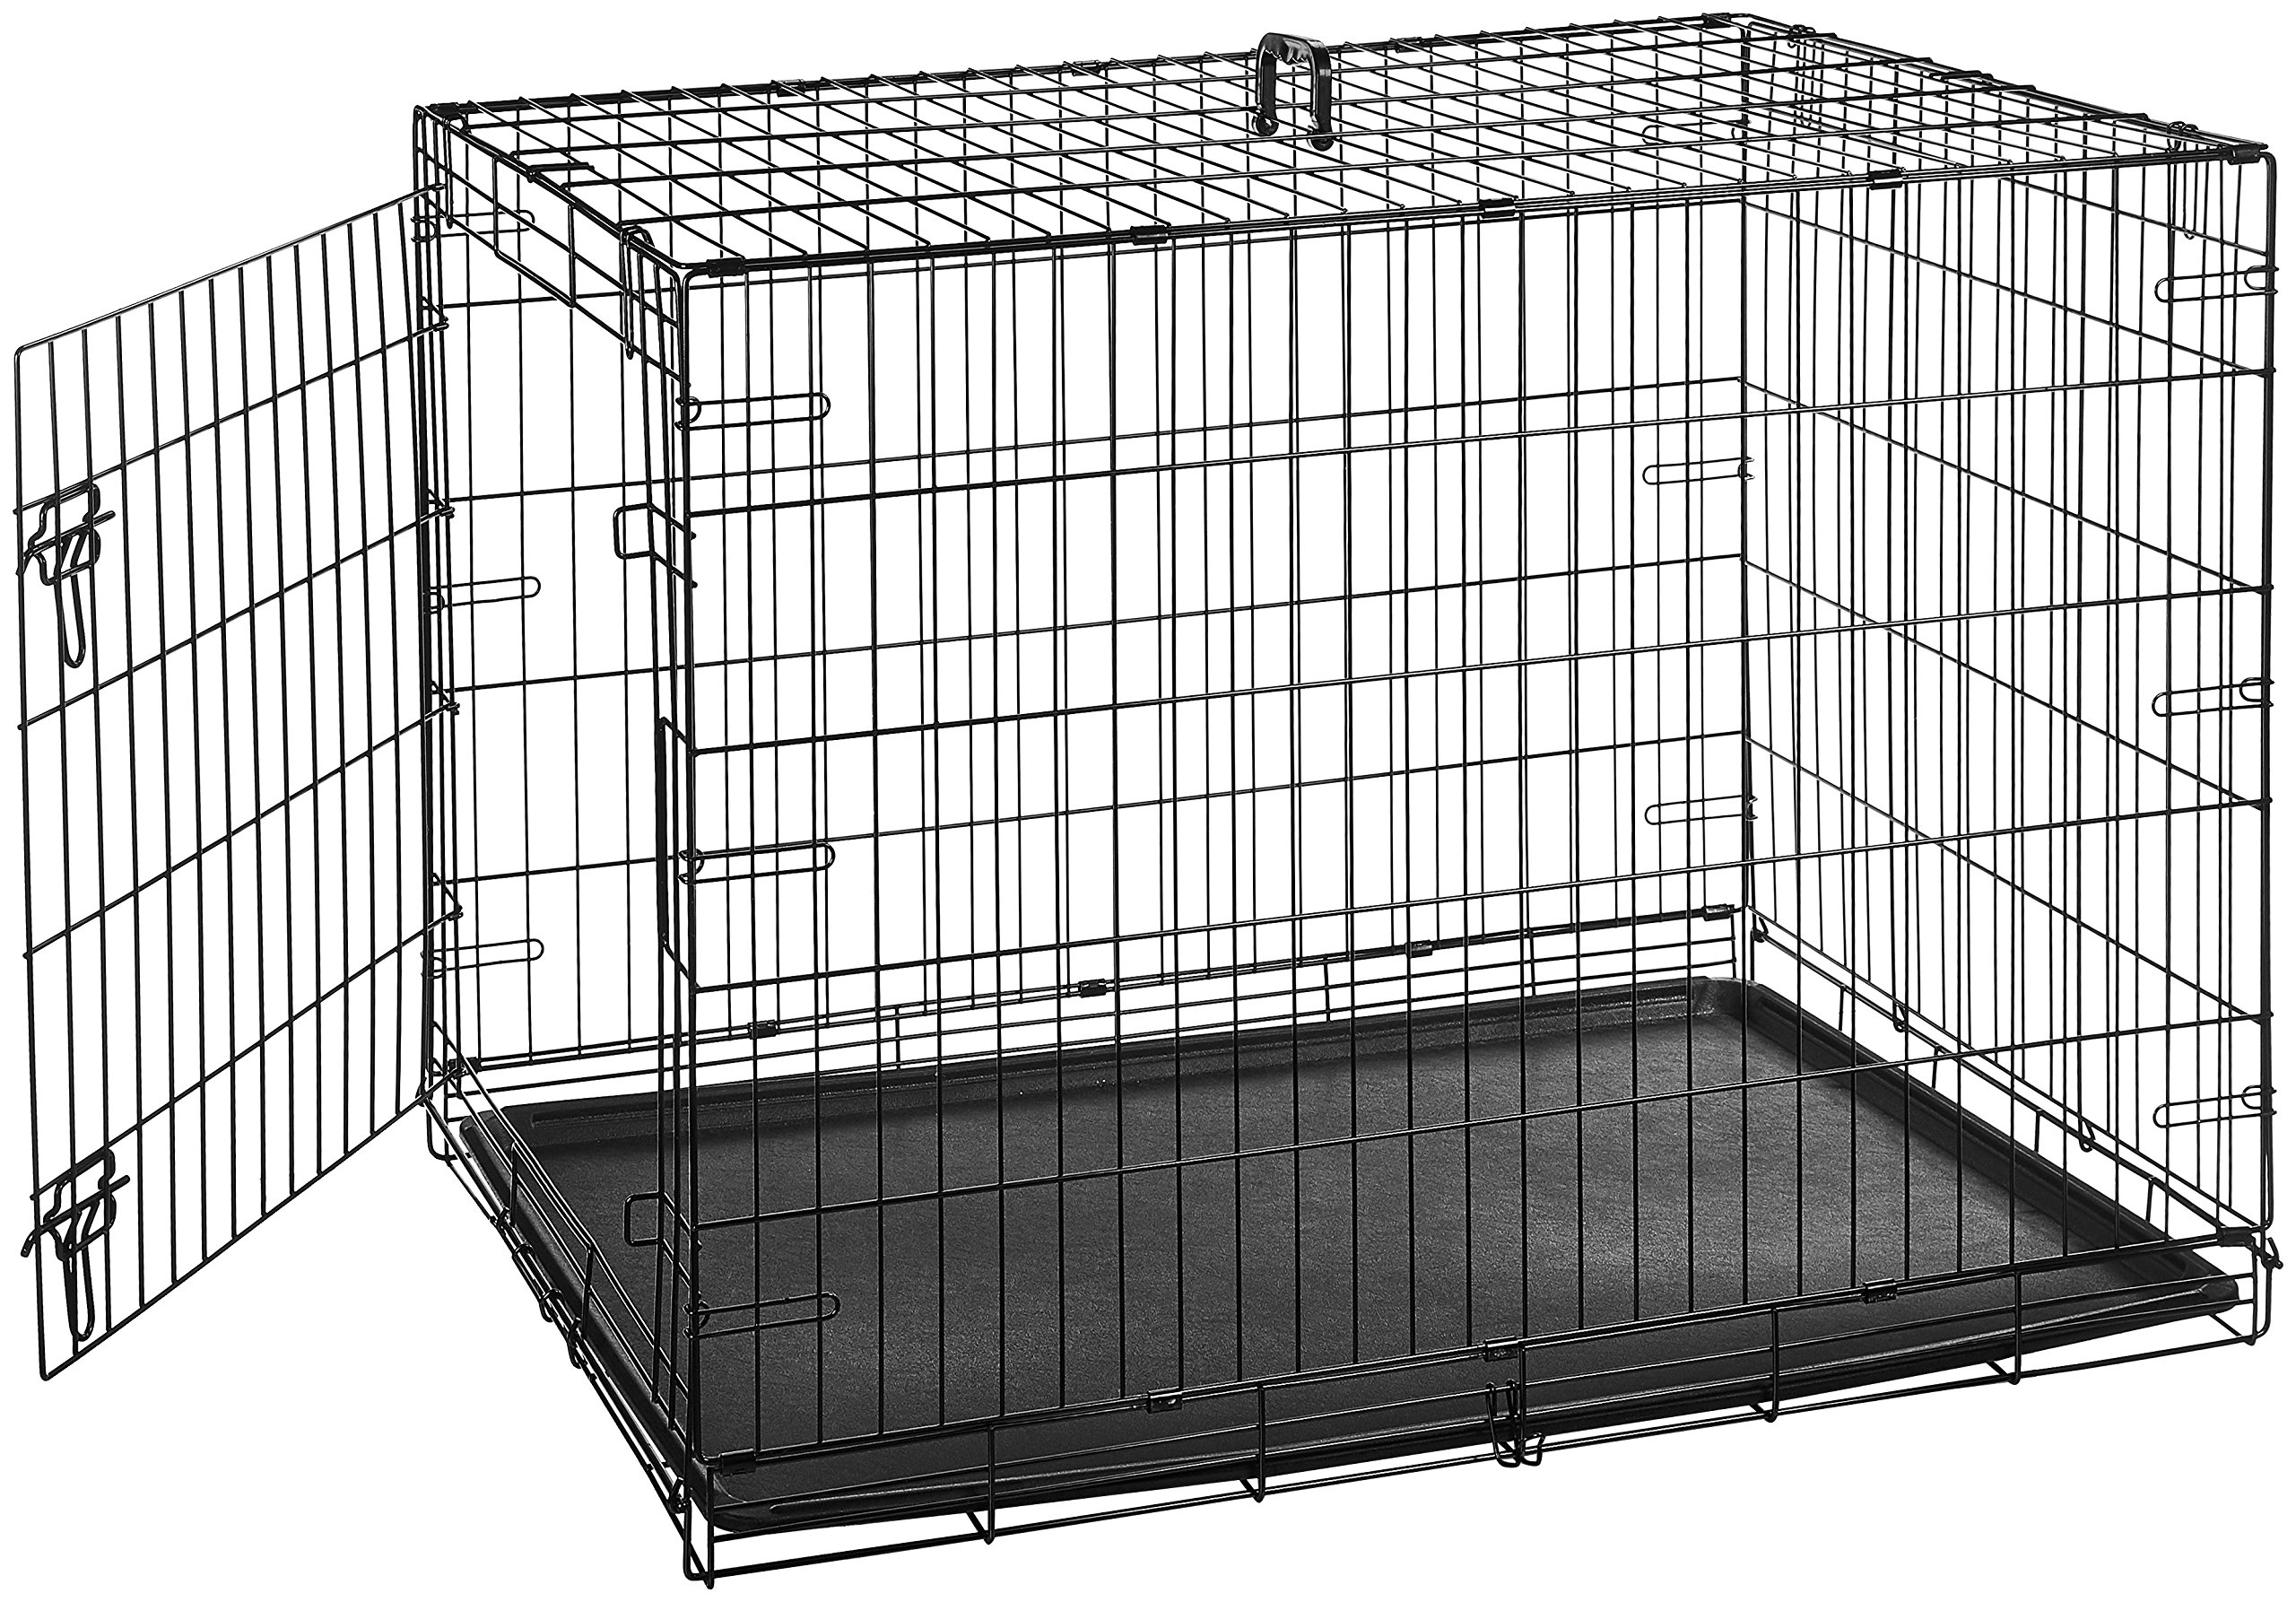 AmazonBasics Single Door Folding Metal Cage Crate For Dog or Puppy - 42 x 28 x 30 Inches by AmazonBasics